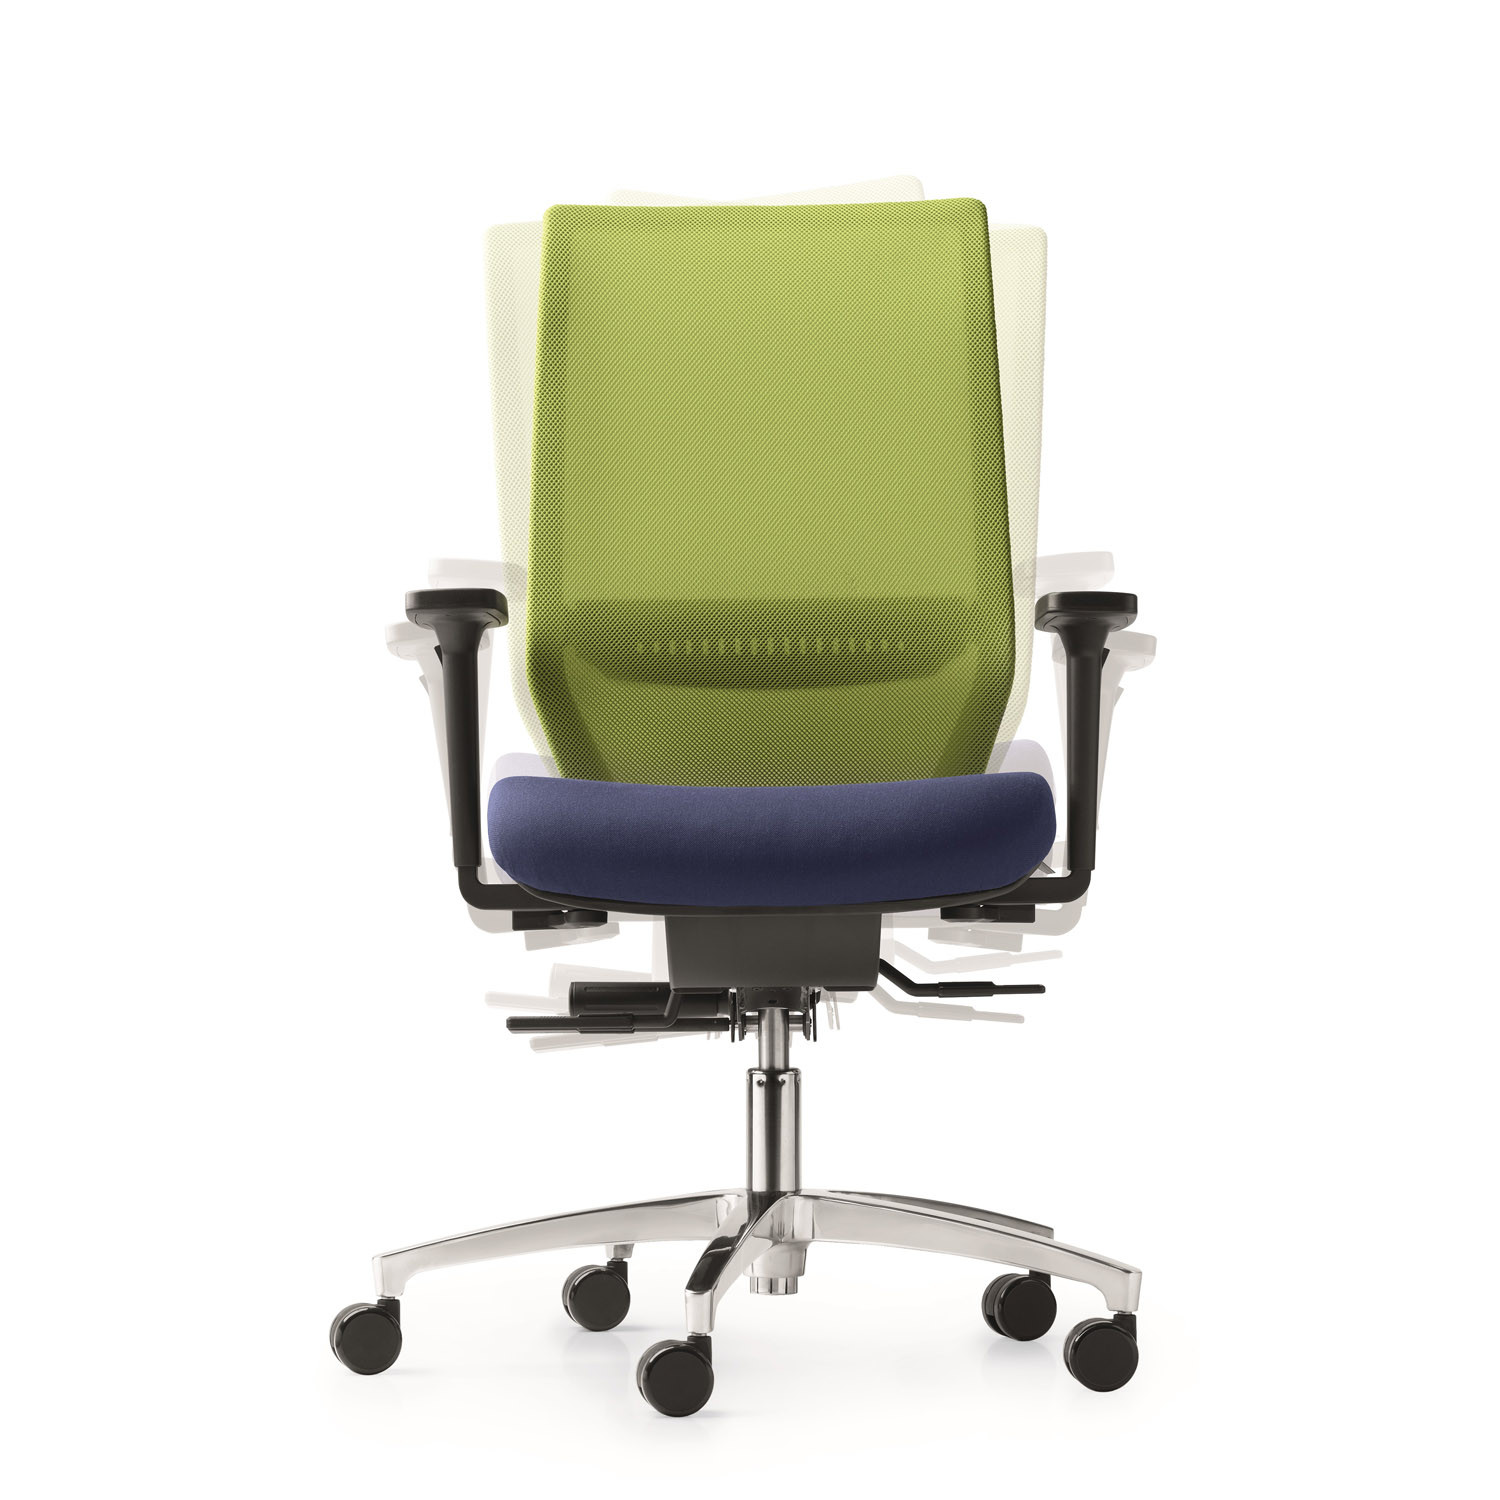 Shape Mesh 3D Office Chairs from Dauphin